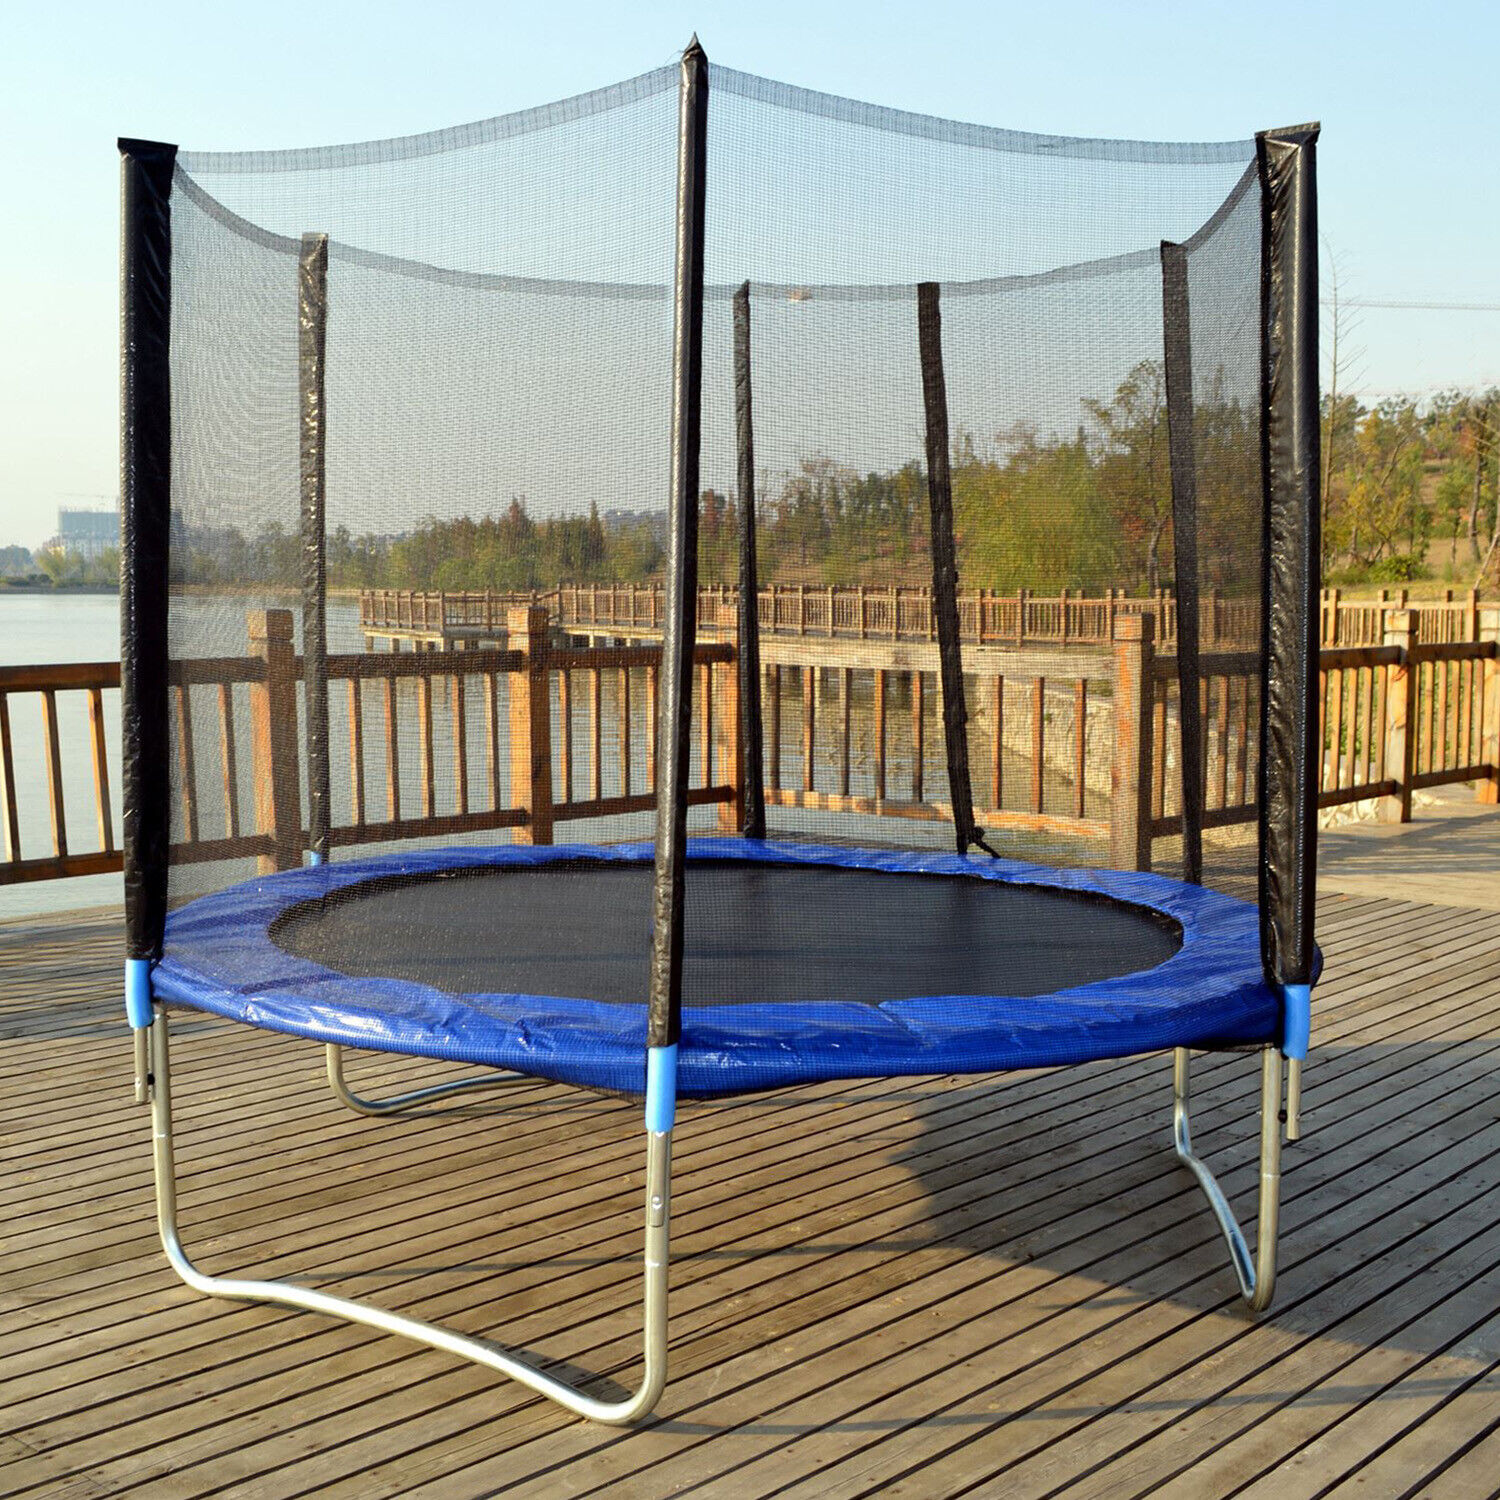 New 10 FT Trampoline Combo Bounce Jump Safety Enclosure Net W/Spring Pad Fitness Equipment & Gear